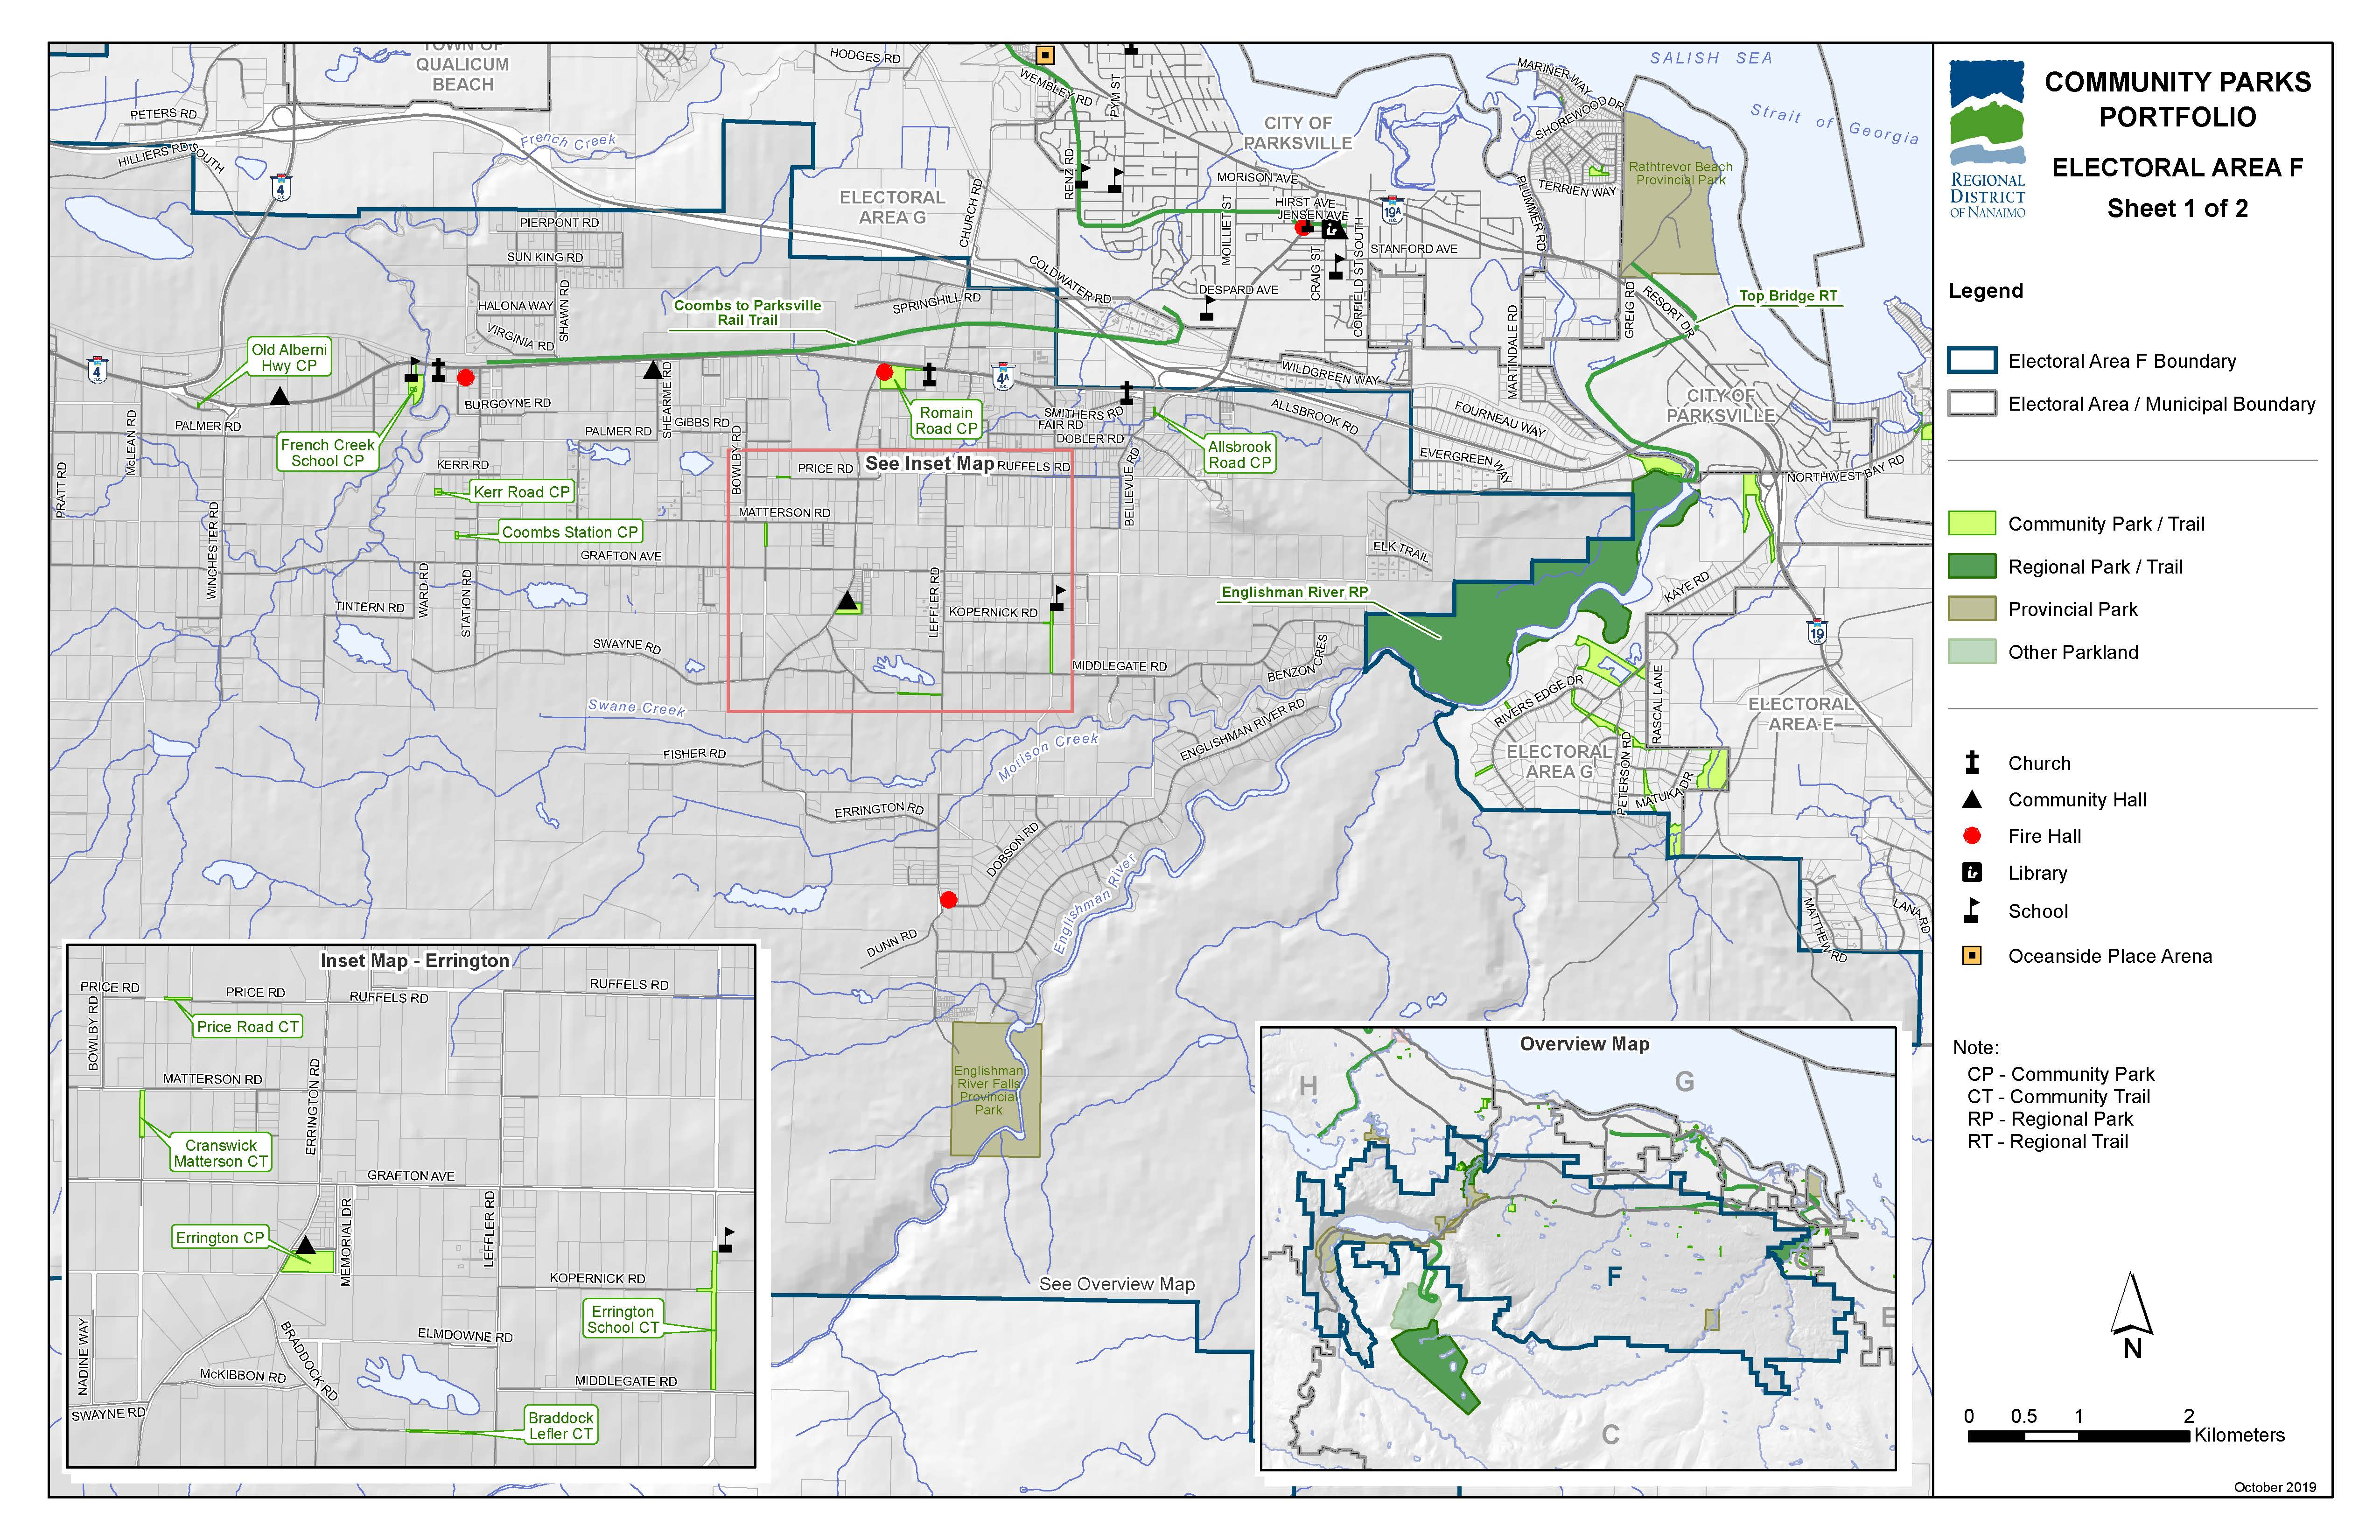 Community Parks and Trails for Area F (East)